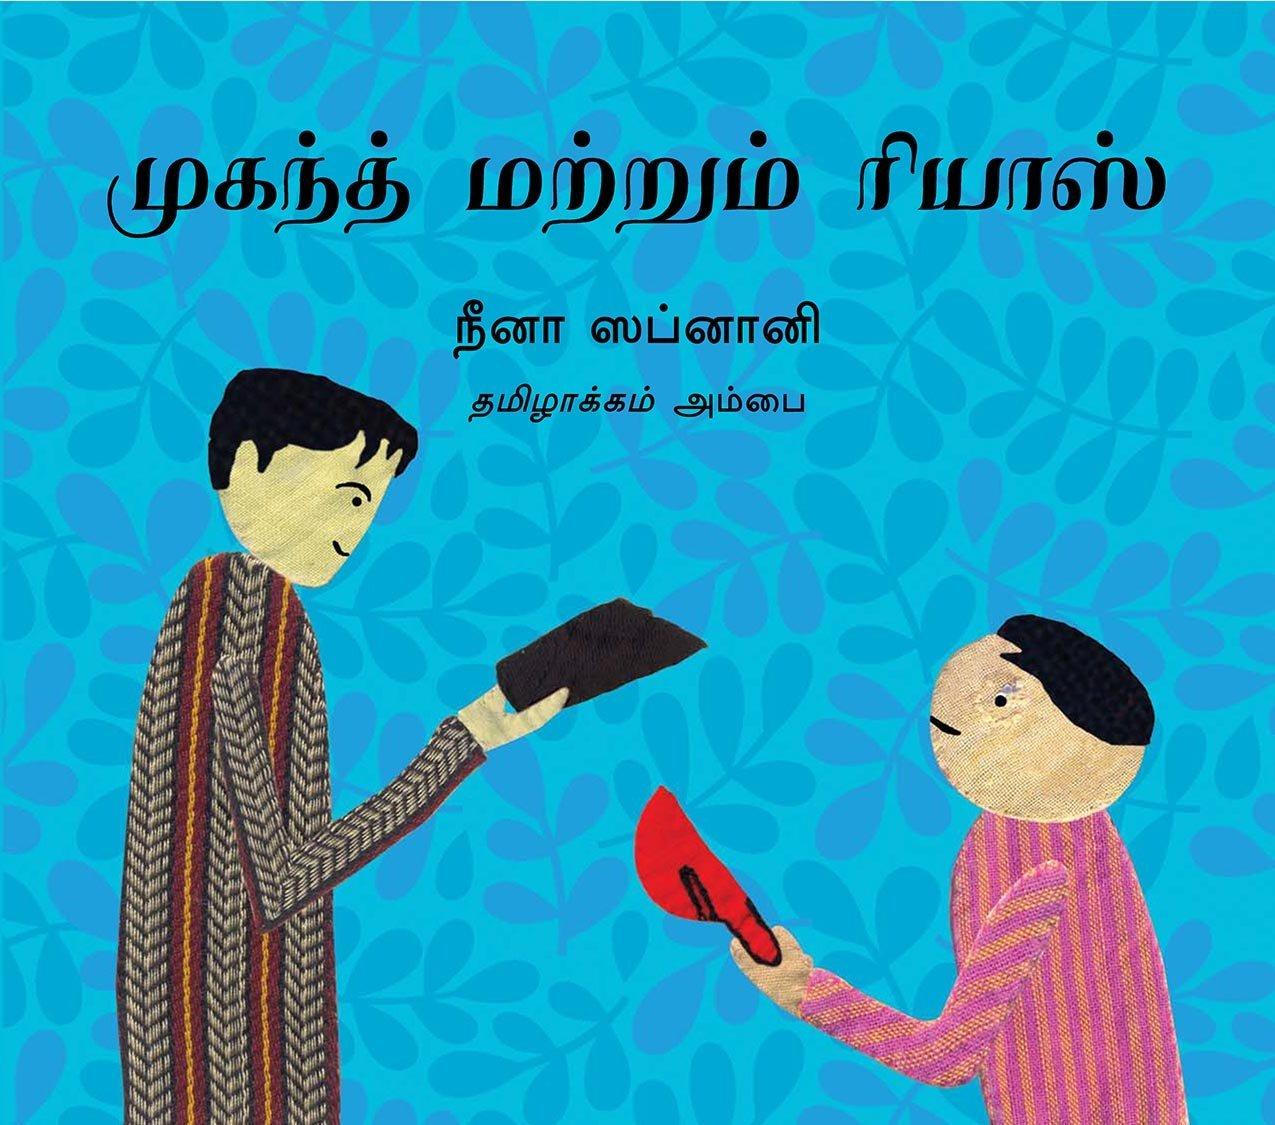 Mukand And Riaz / Mukand Mattrum Riaz (Tamil) Picture Books Age_5+ ISBN: 9788181463463